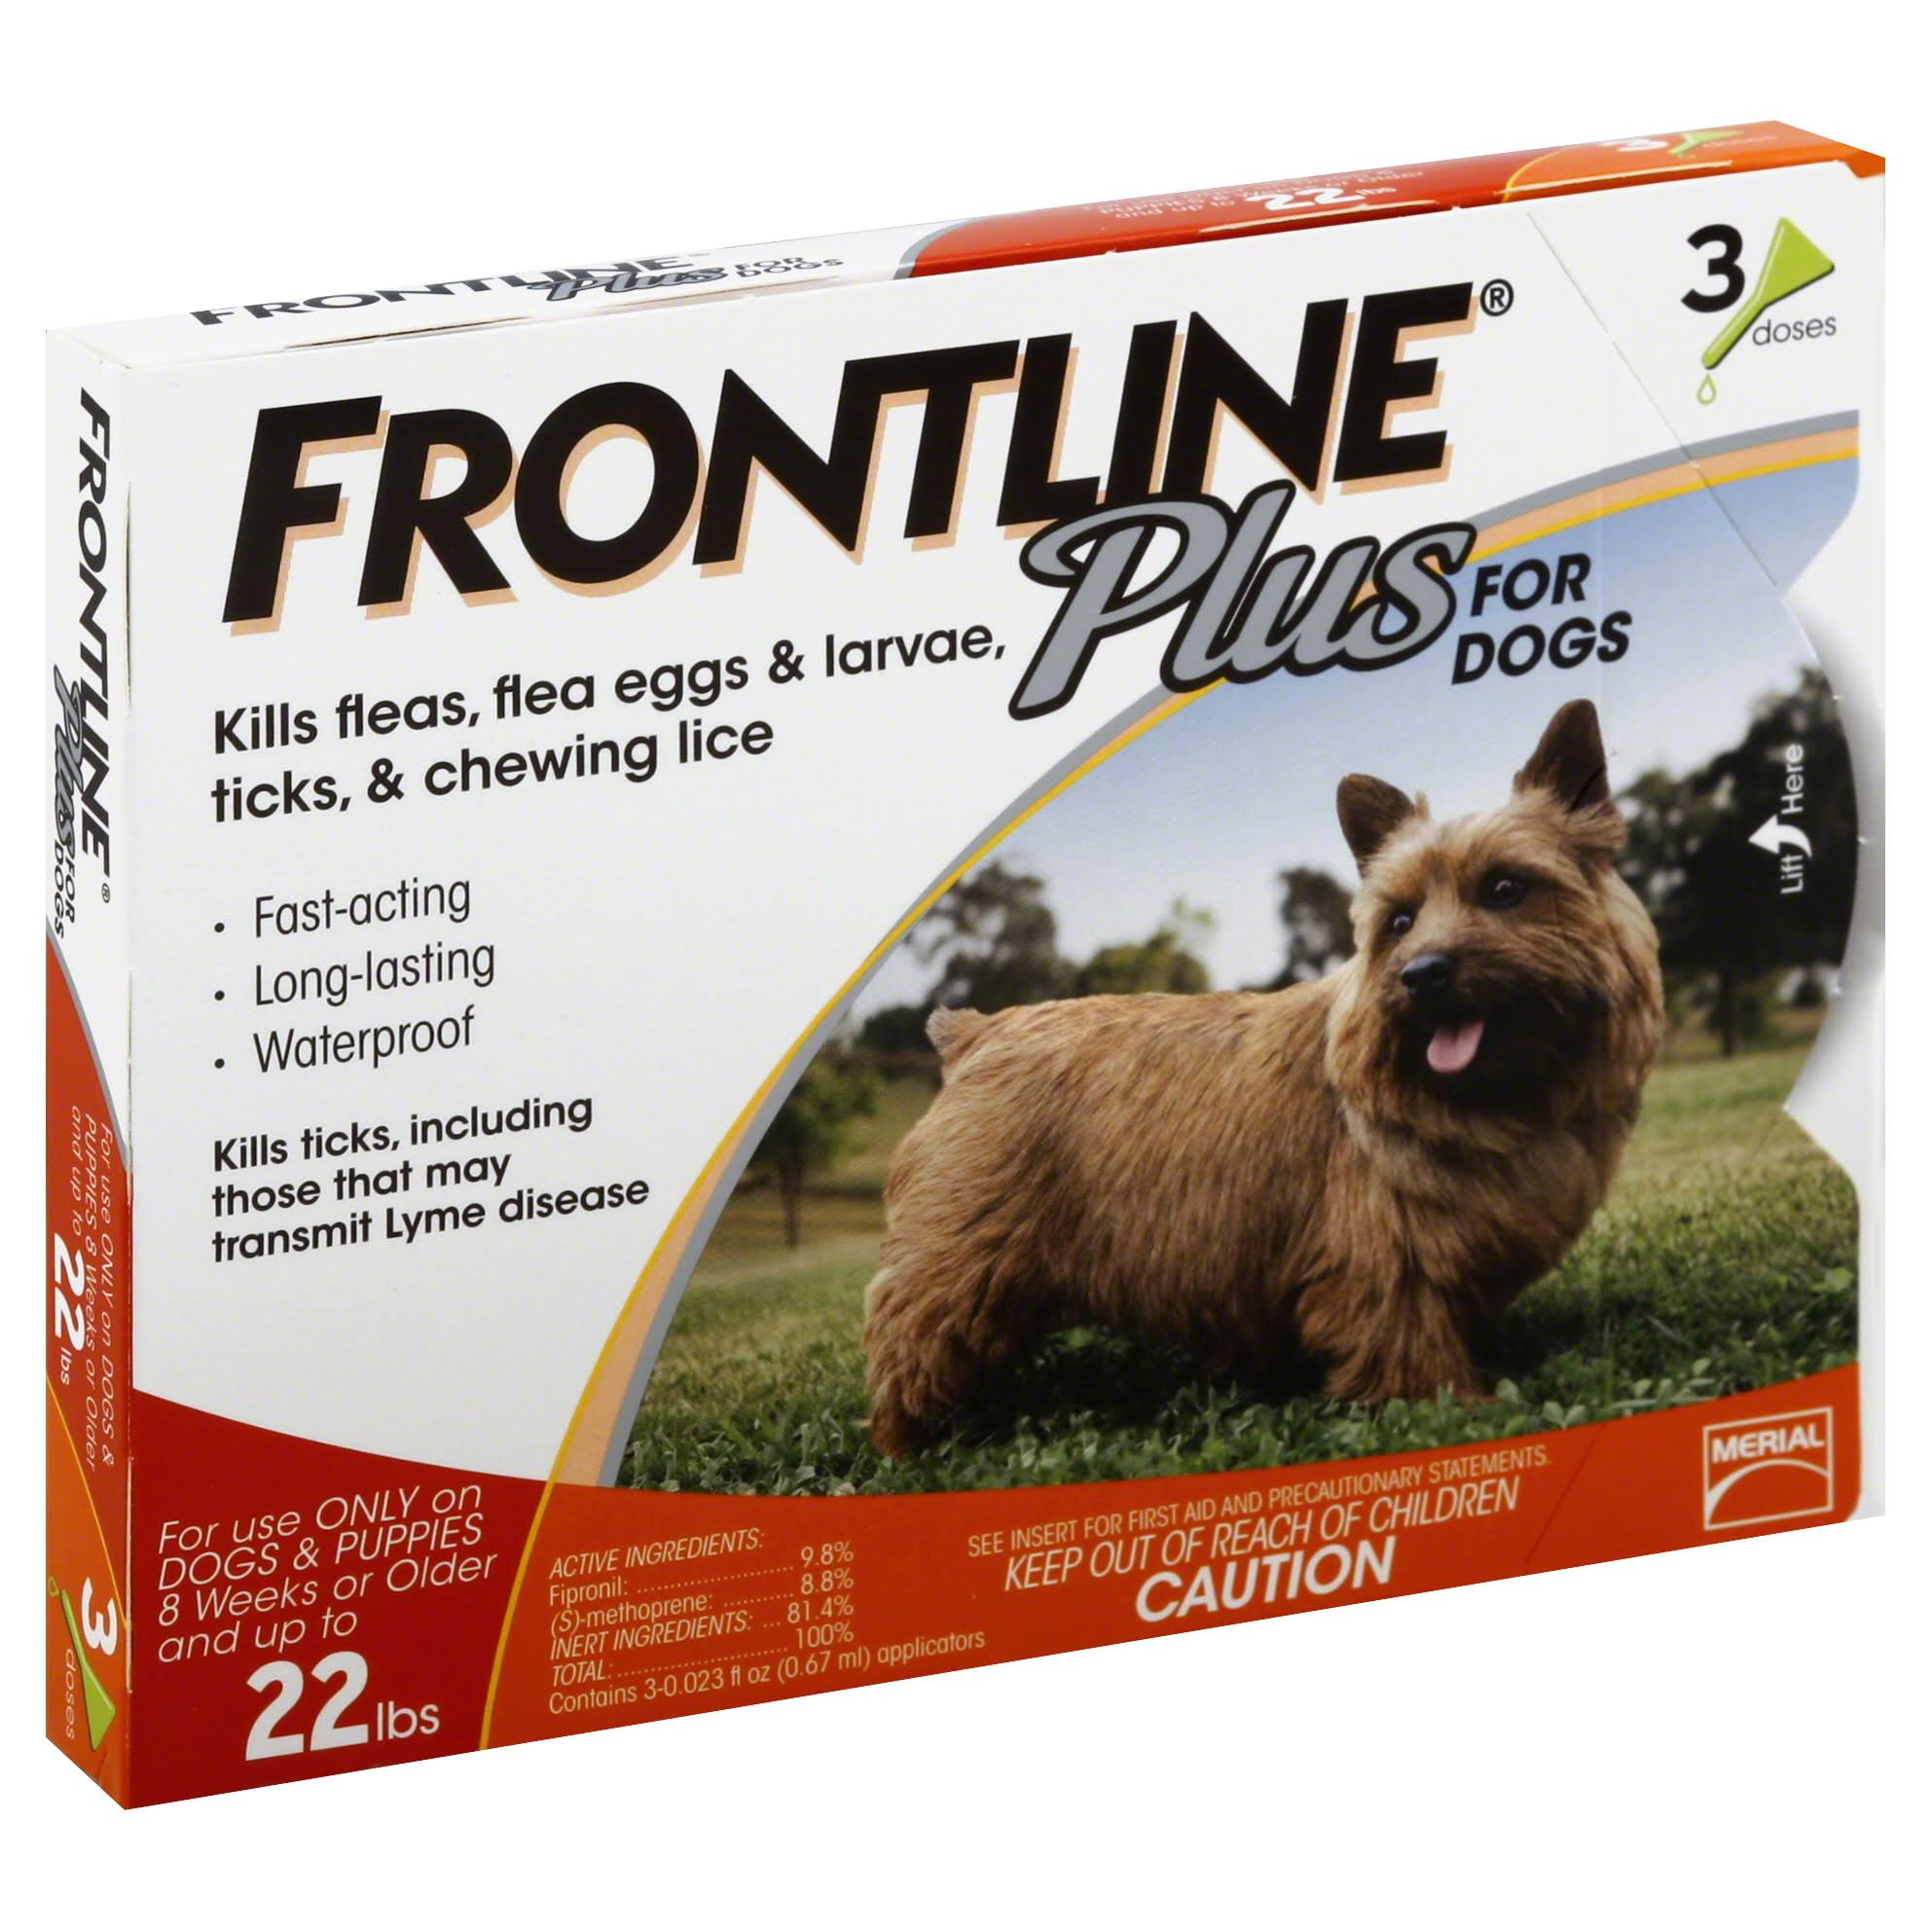 Frontline Plus Dog Flea Drops - 0.023oz, 3ct